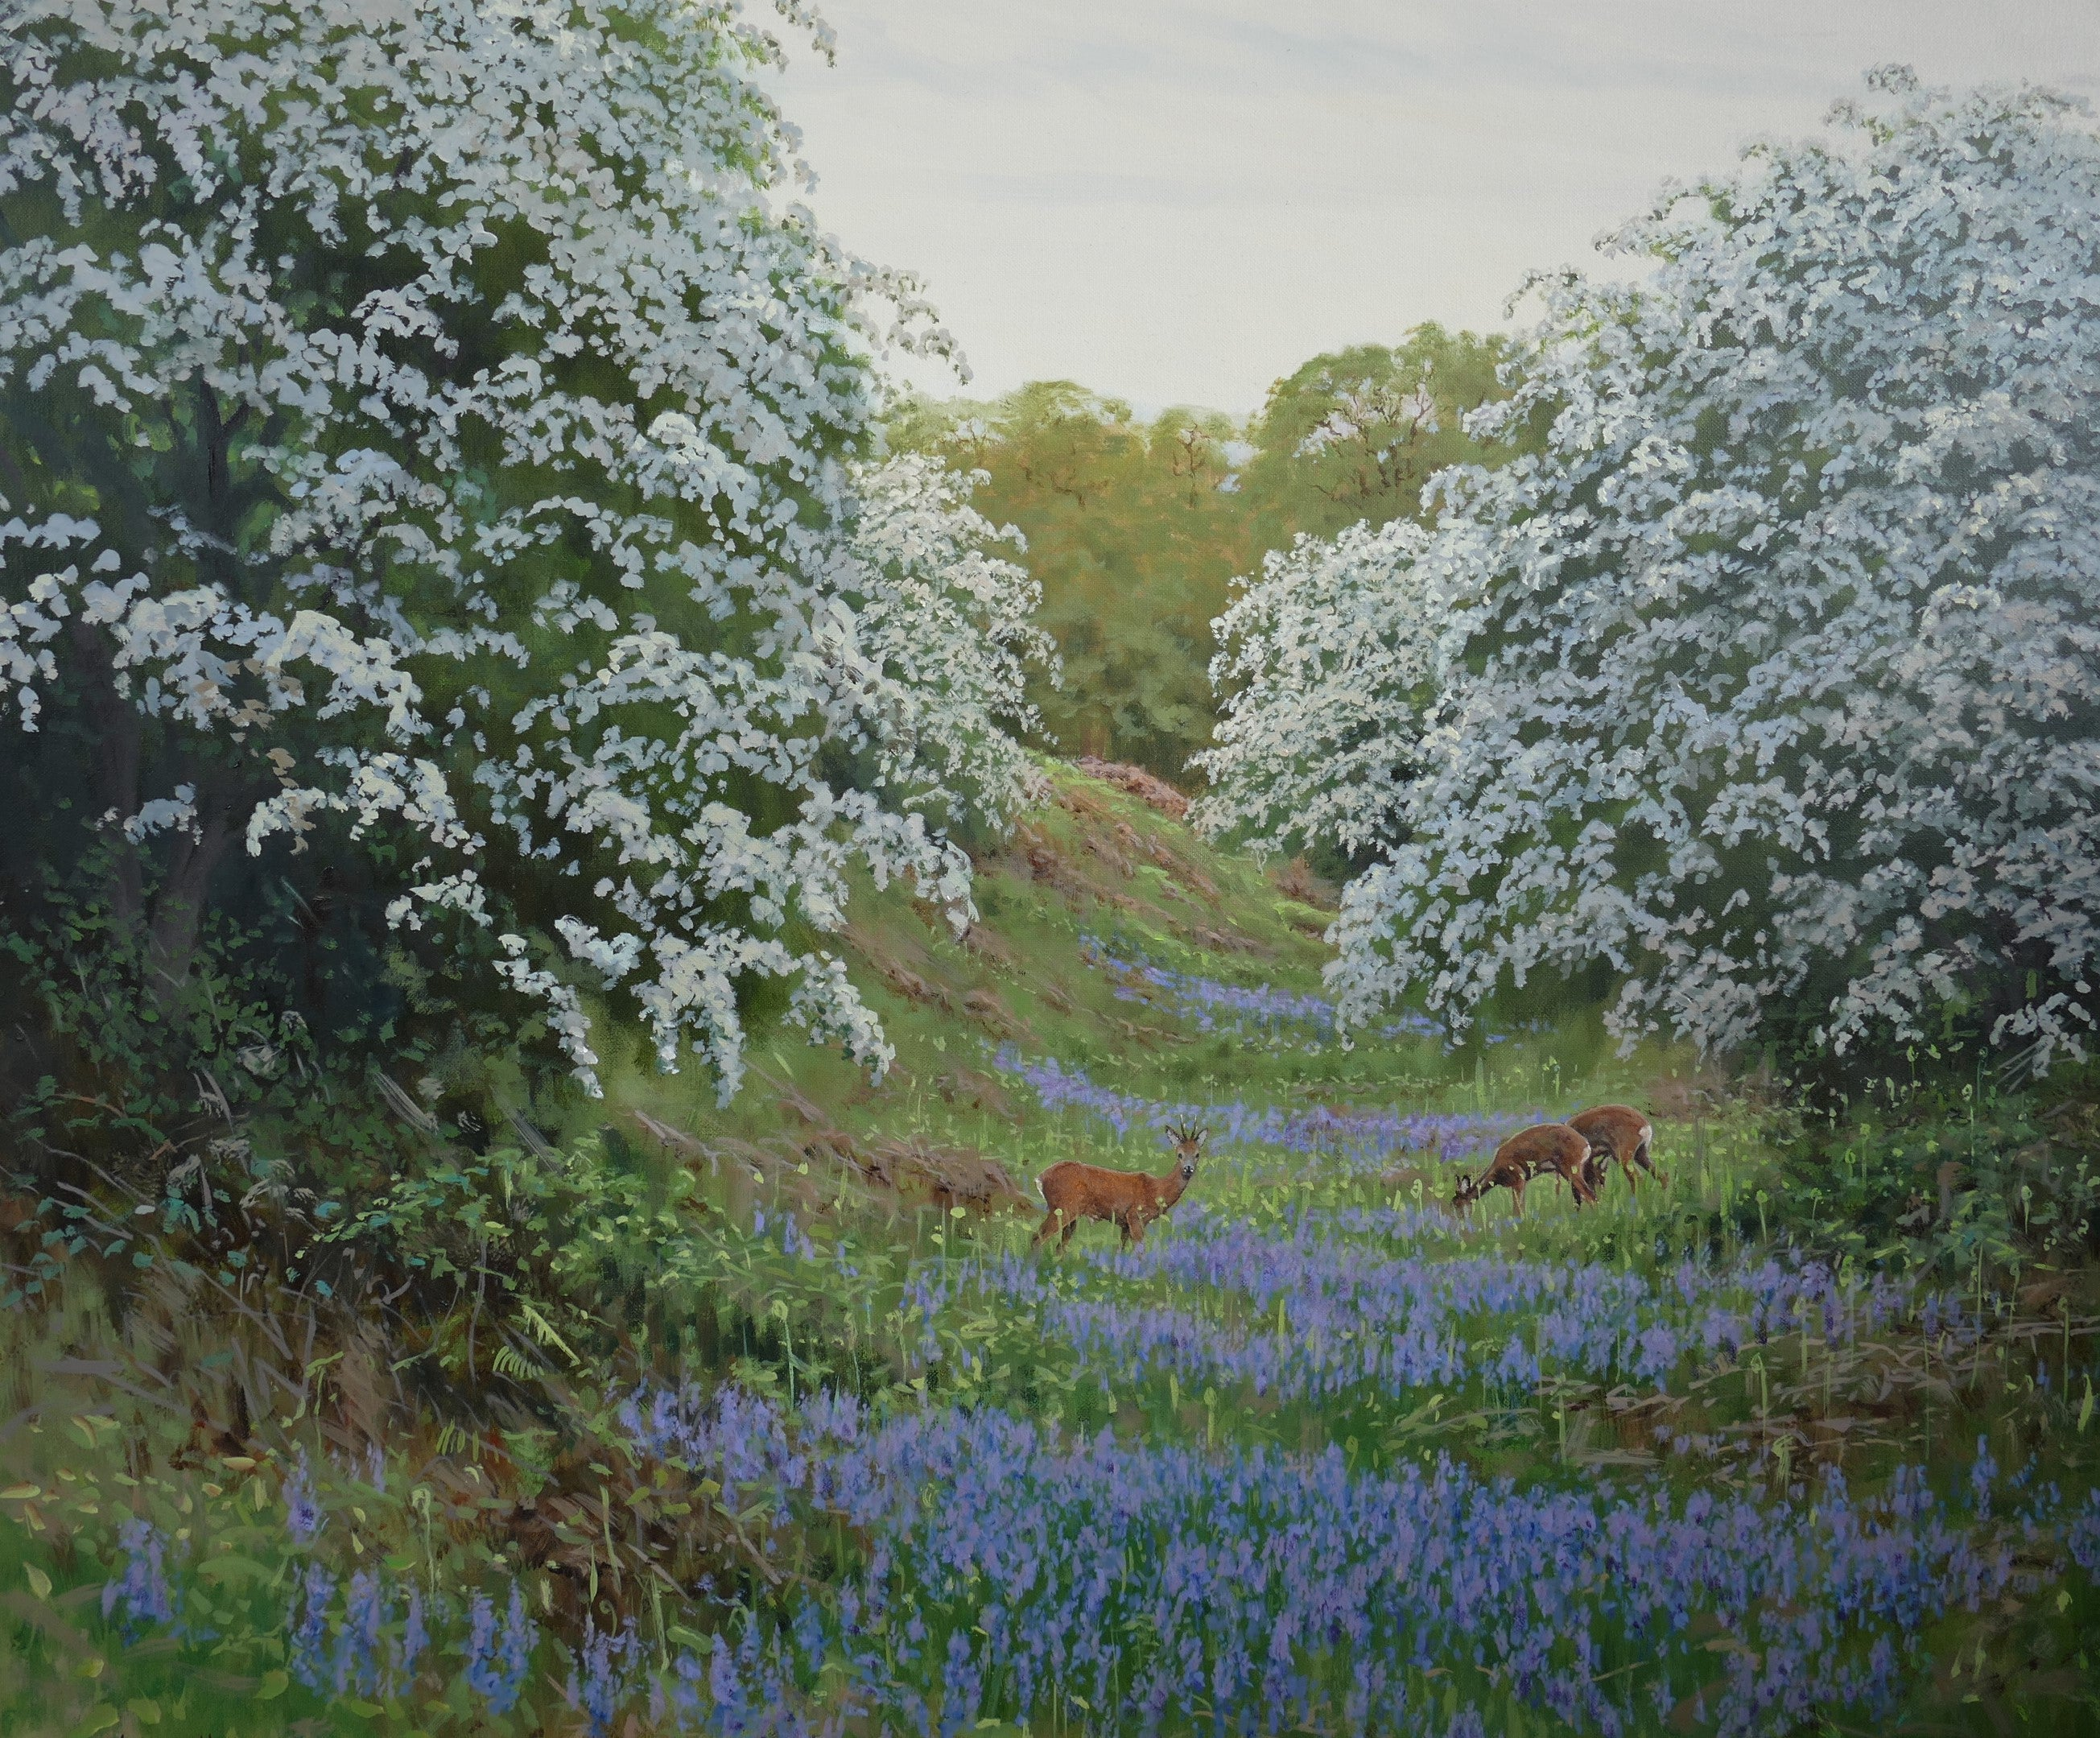 'Bluebells and Roe' - Original Oil Painting by Alistair Makinson - 60 x 70cm